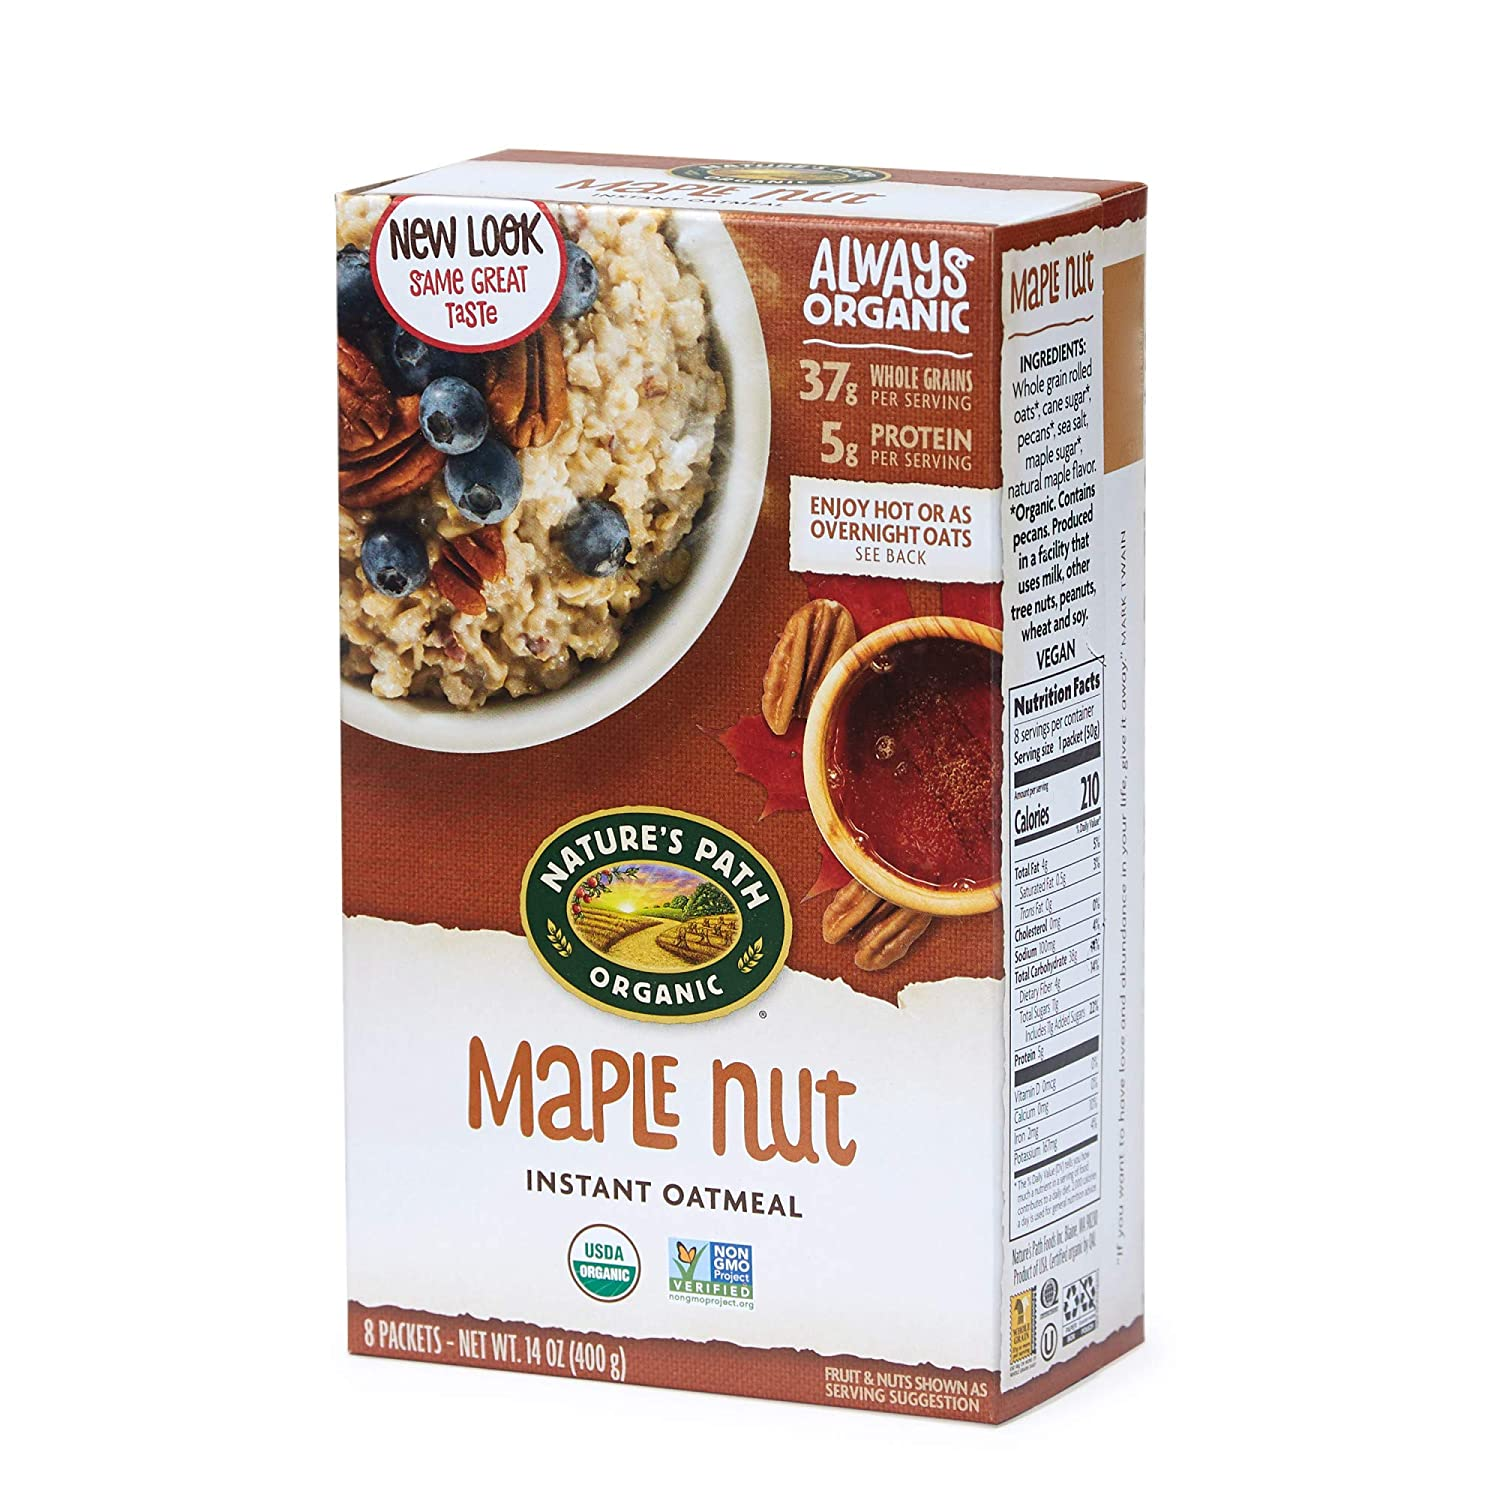 Nature's Path Maple Nut Instant Oatmeal, Healthy, Organic, 8 Pouches per Box, 14 Ounces (Pack of 6)